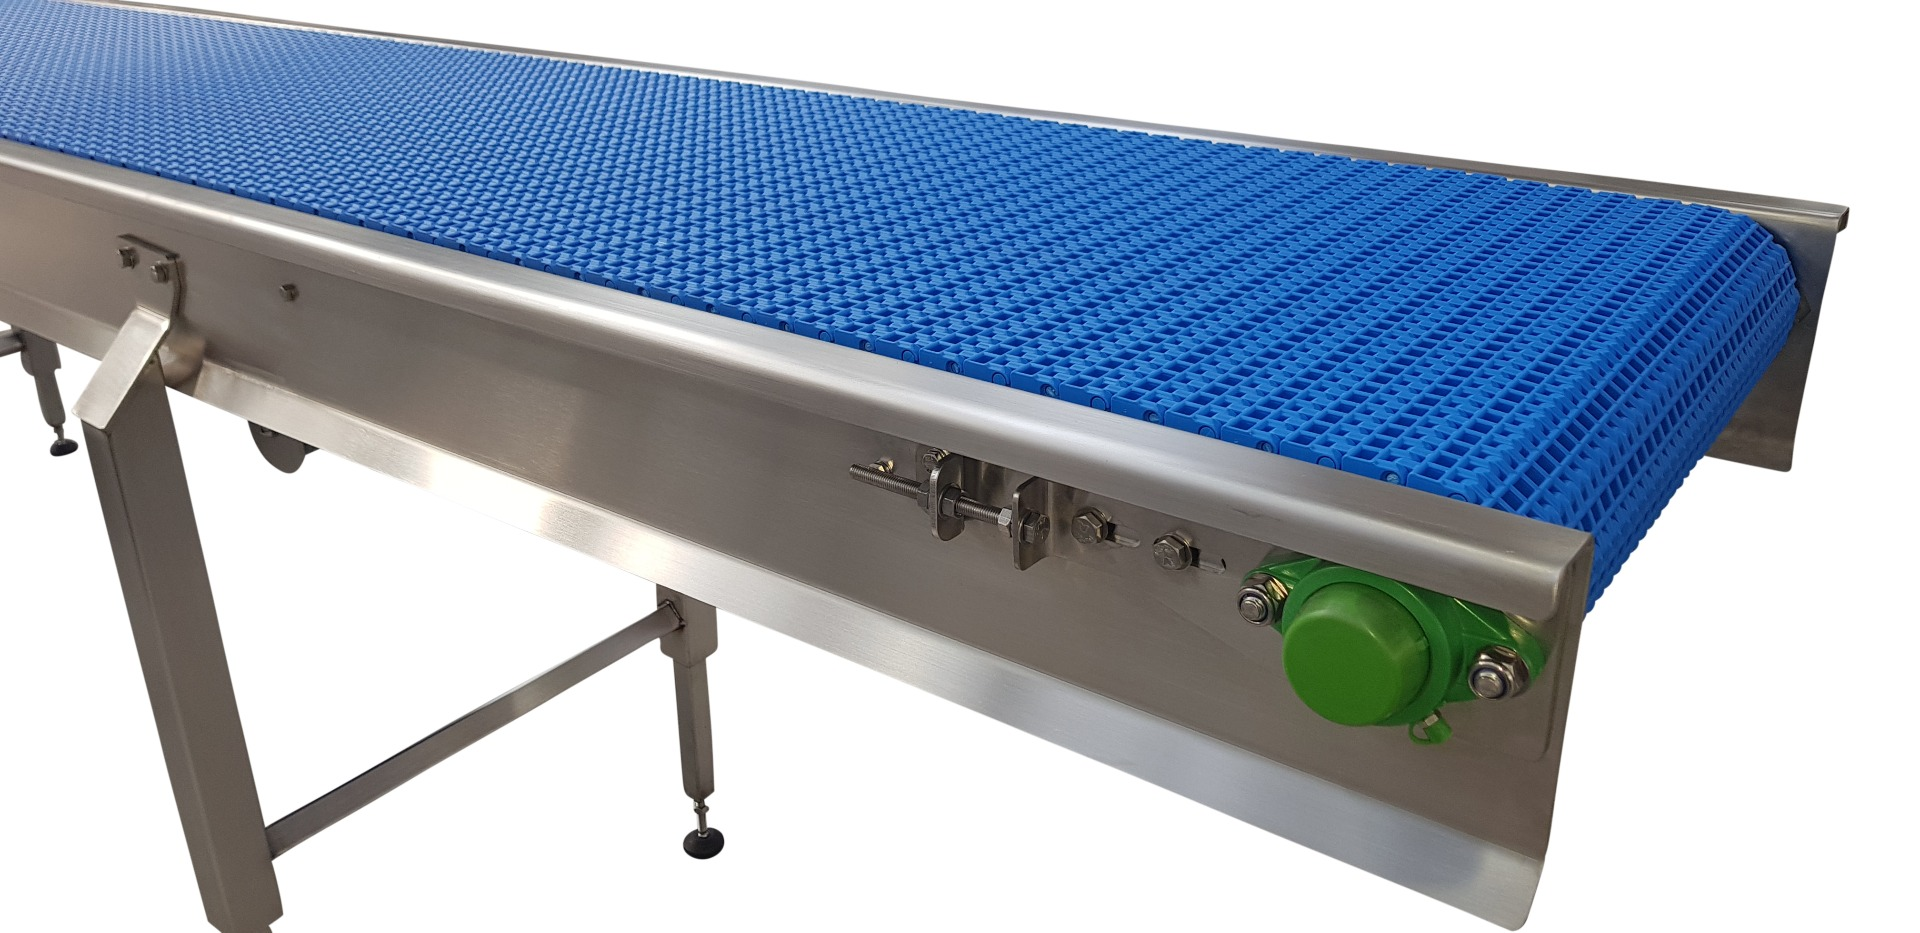 Plastic modular belted stainless steel conveyor